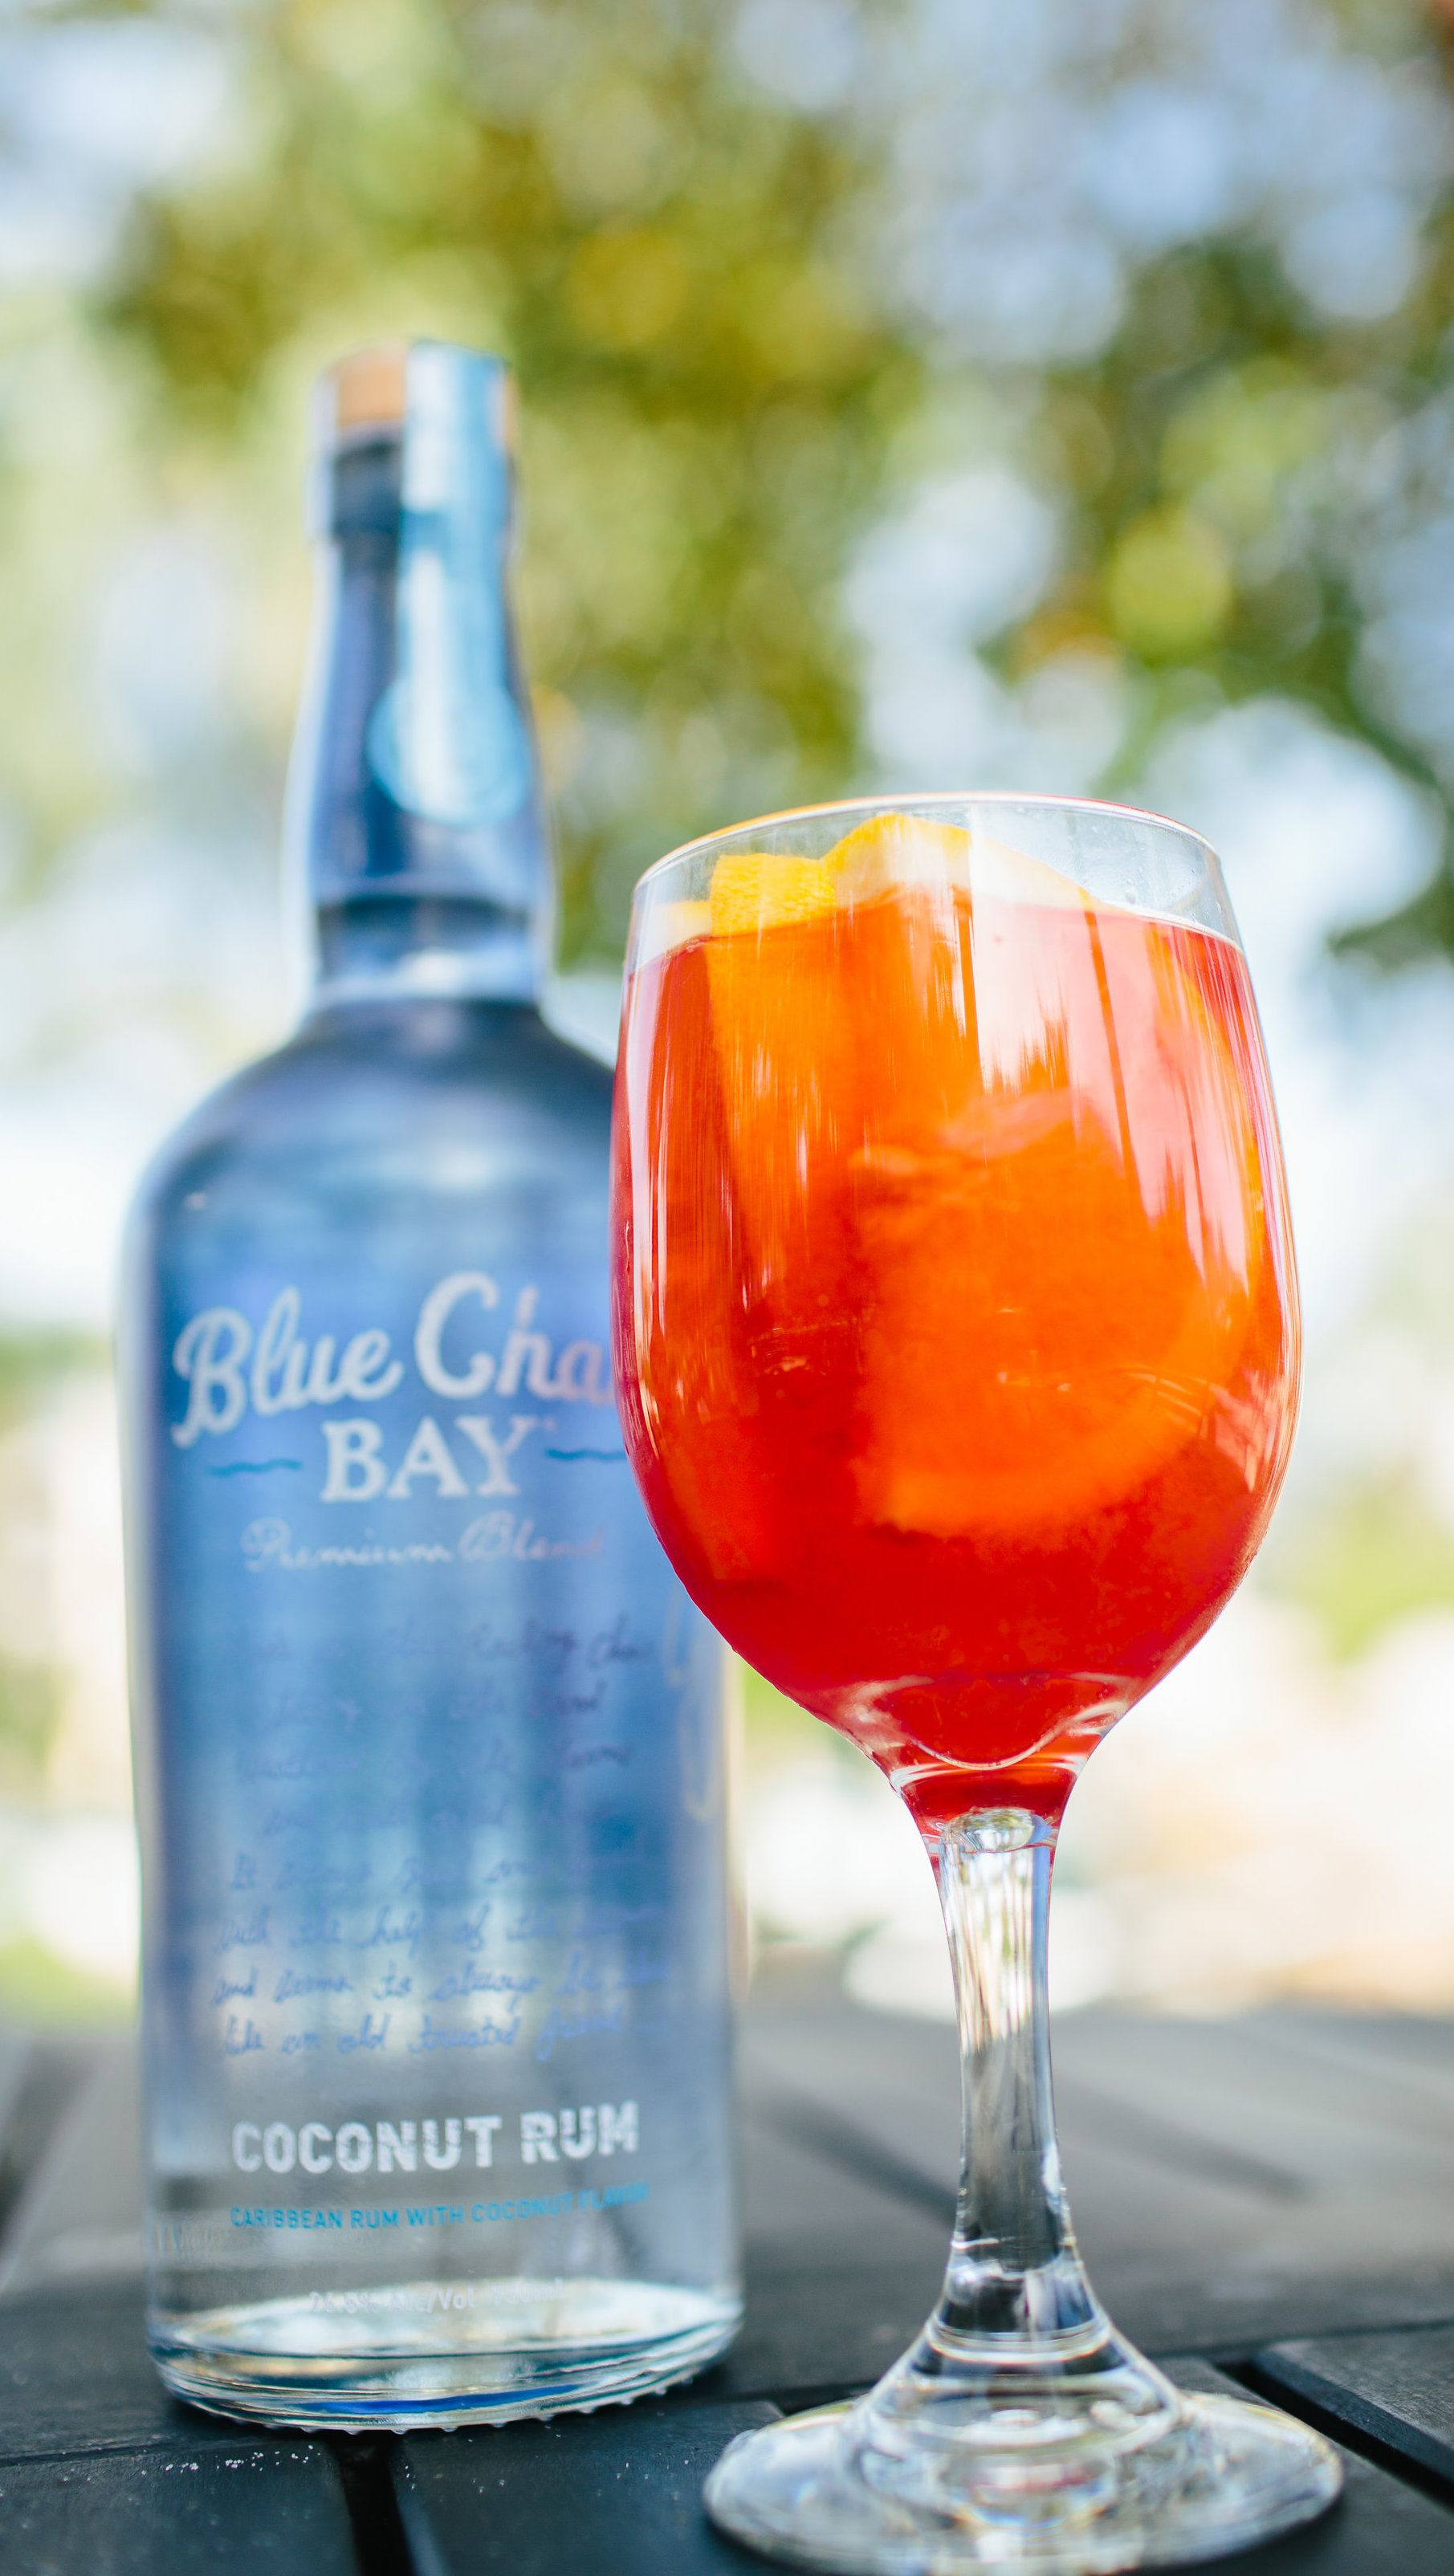 RED OCTOBER COCKTAIL 1 5 oz Blue Chair Bay Coconut Rum 1 5